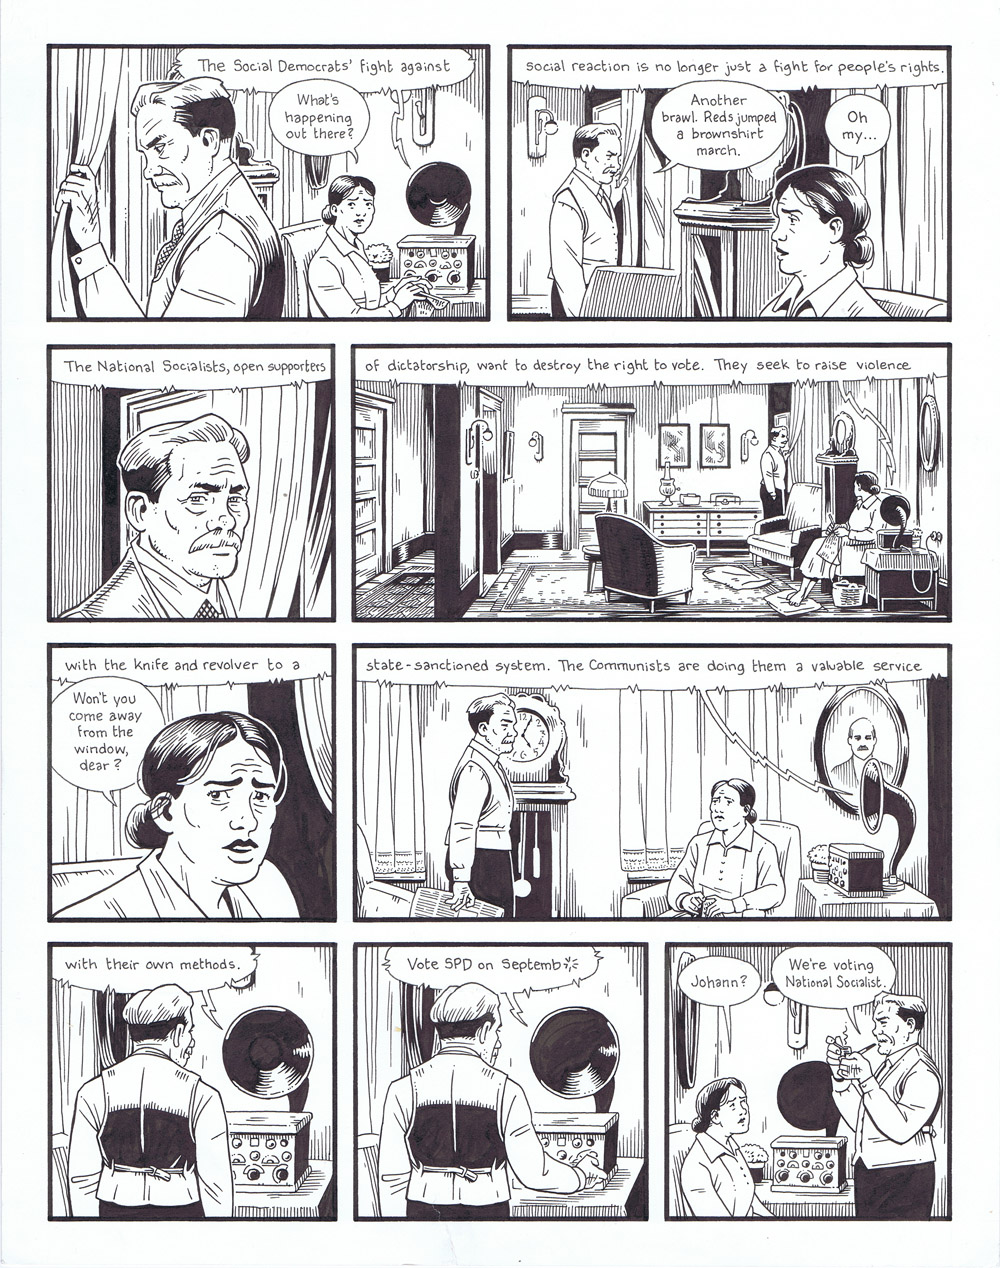 Berlin: Book 2 - page 190